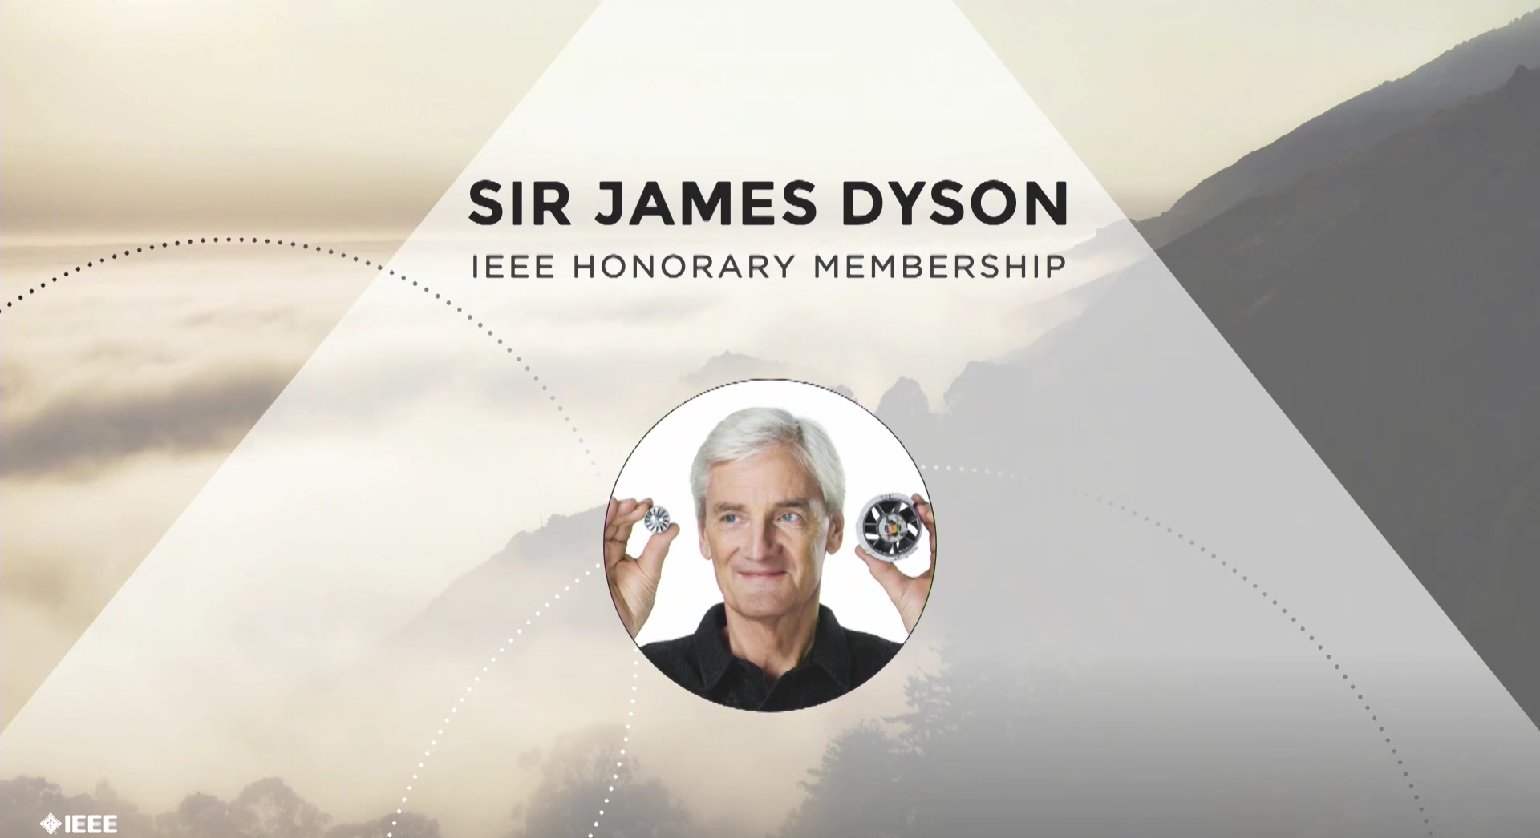 Sir James Dyson receives the IEEE Honorary Membership - Honors Ceremony 2017